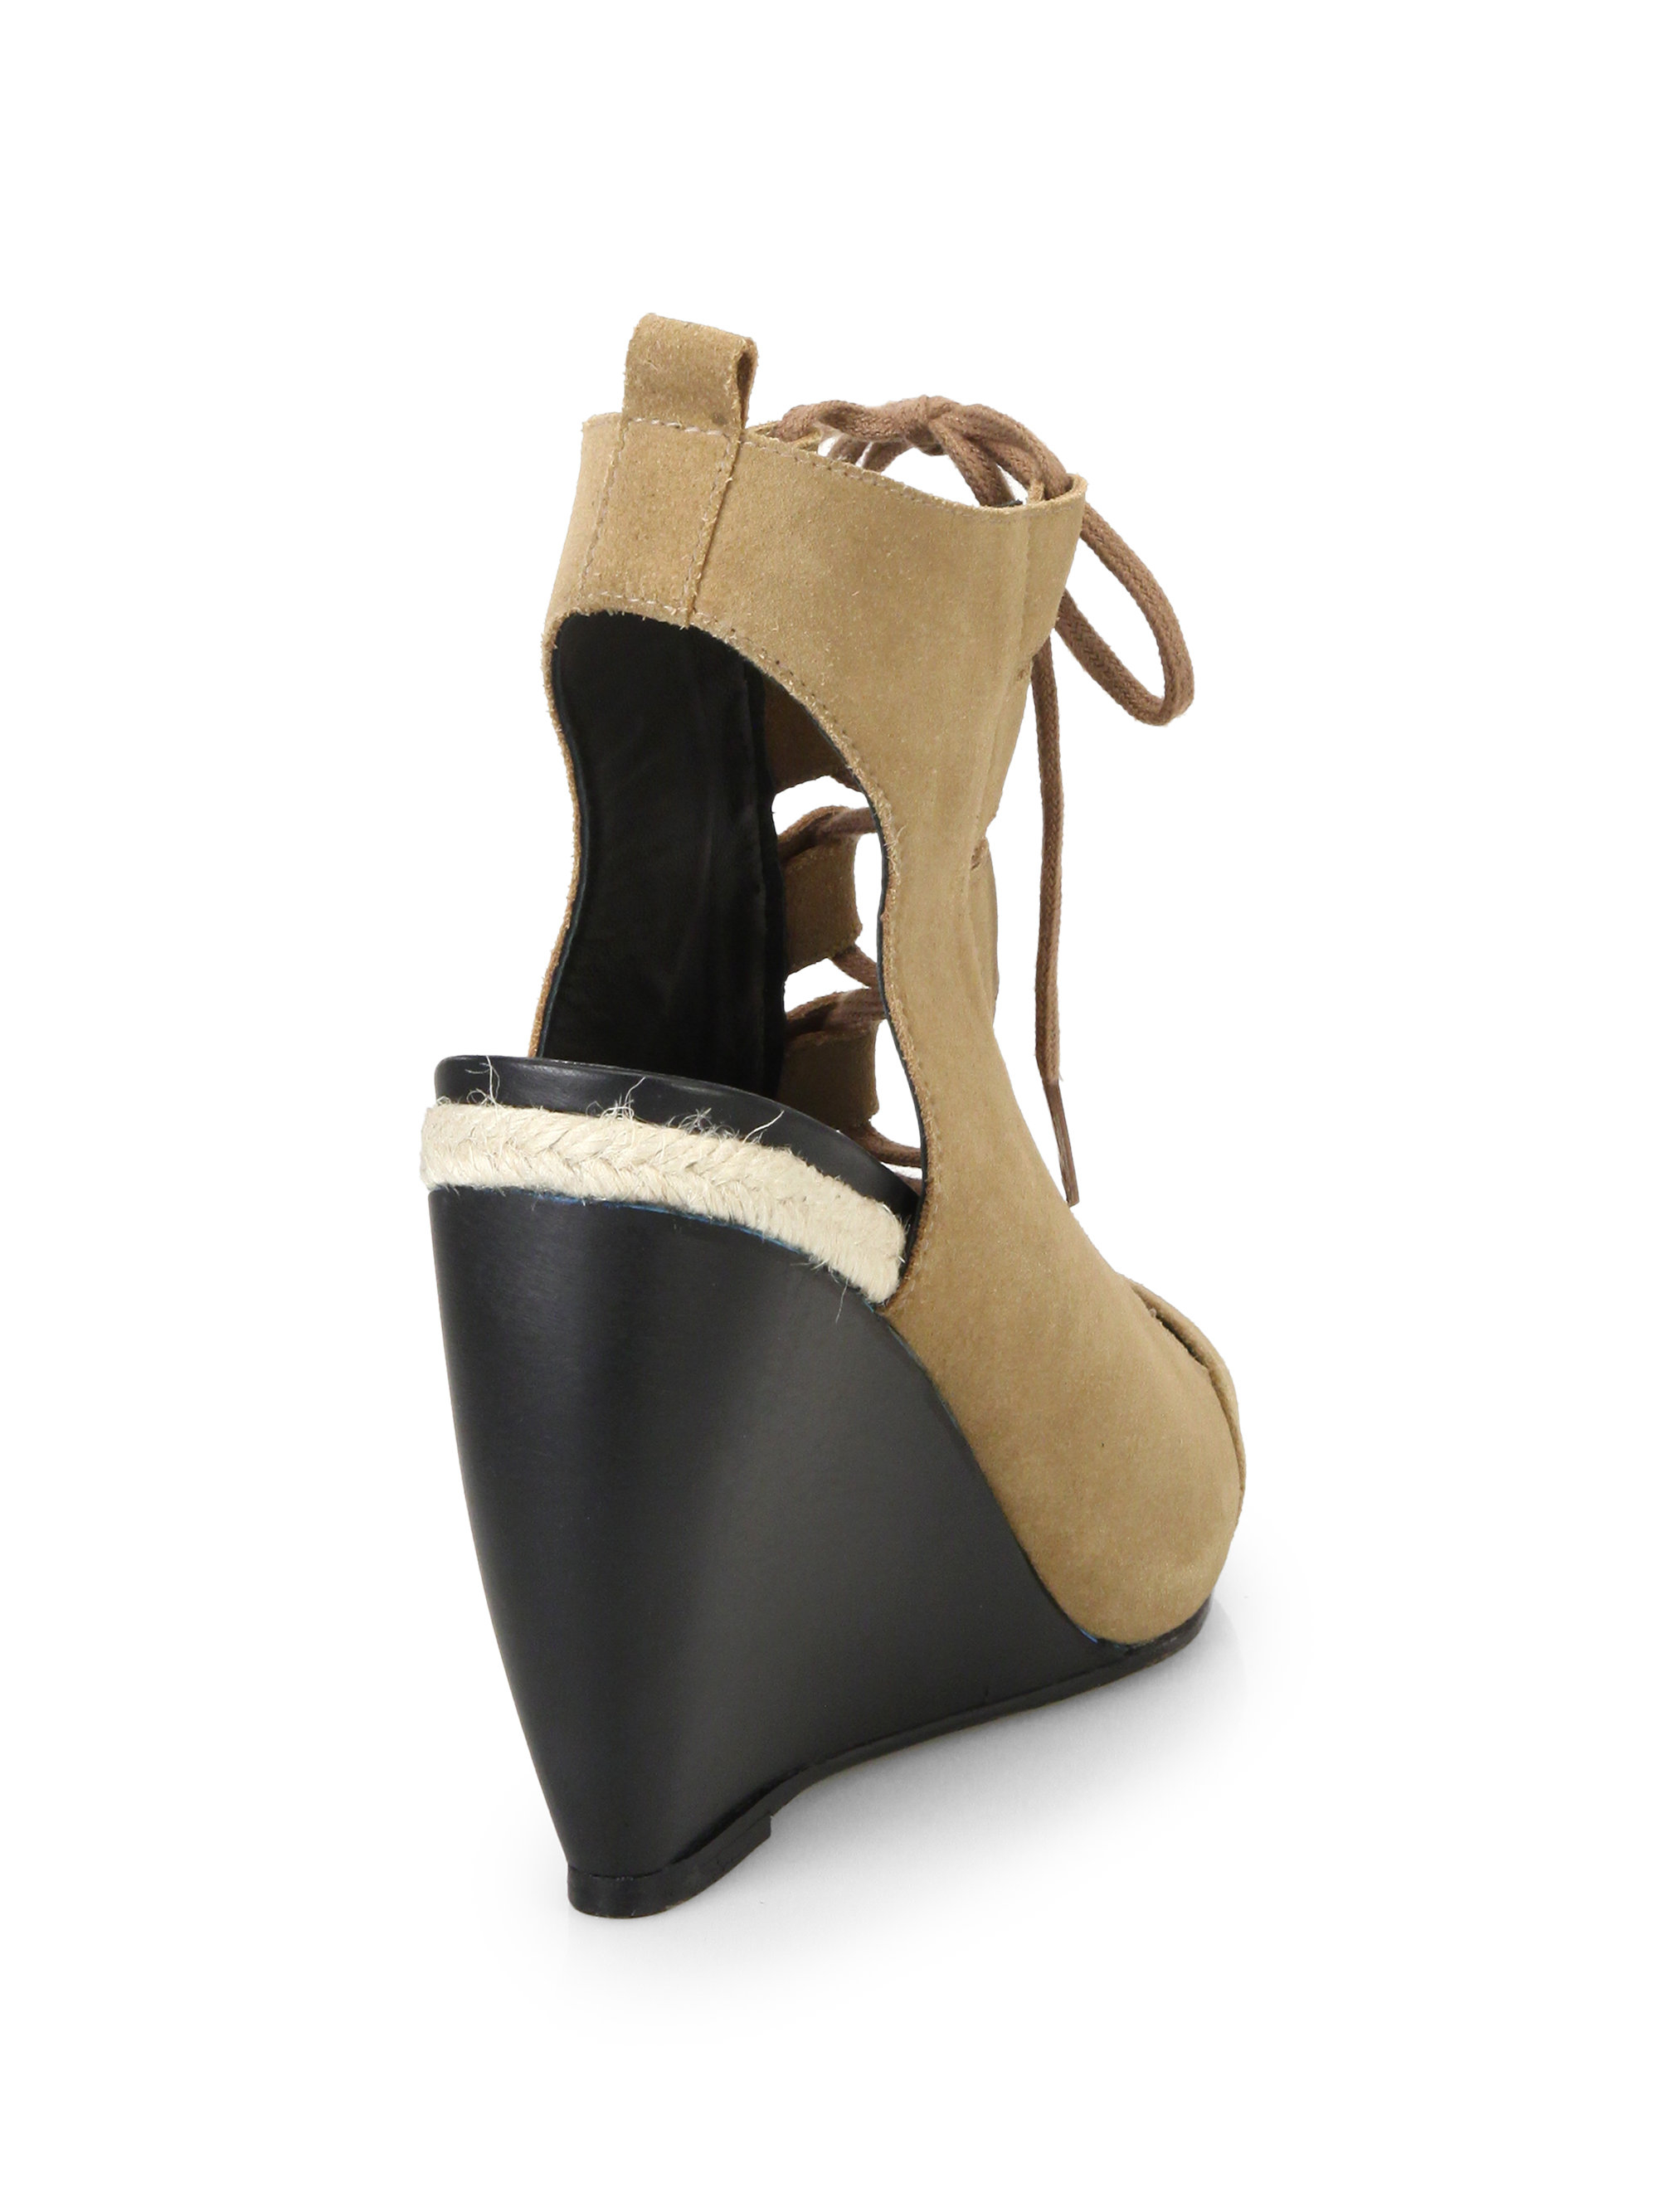 free shipping cheap real outlet online shop Pierre Hardy Platform Lace-Up Wedges footlocker pictures for sale amazing price cheap price shipping discount sale dHZTK